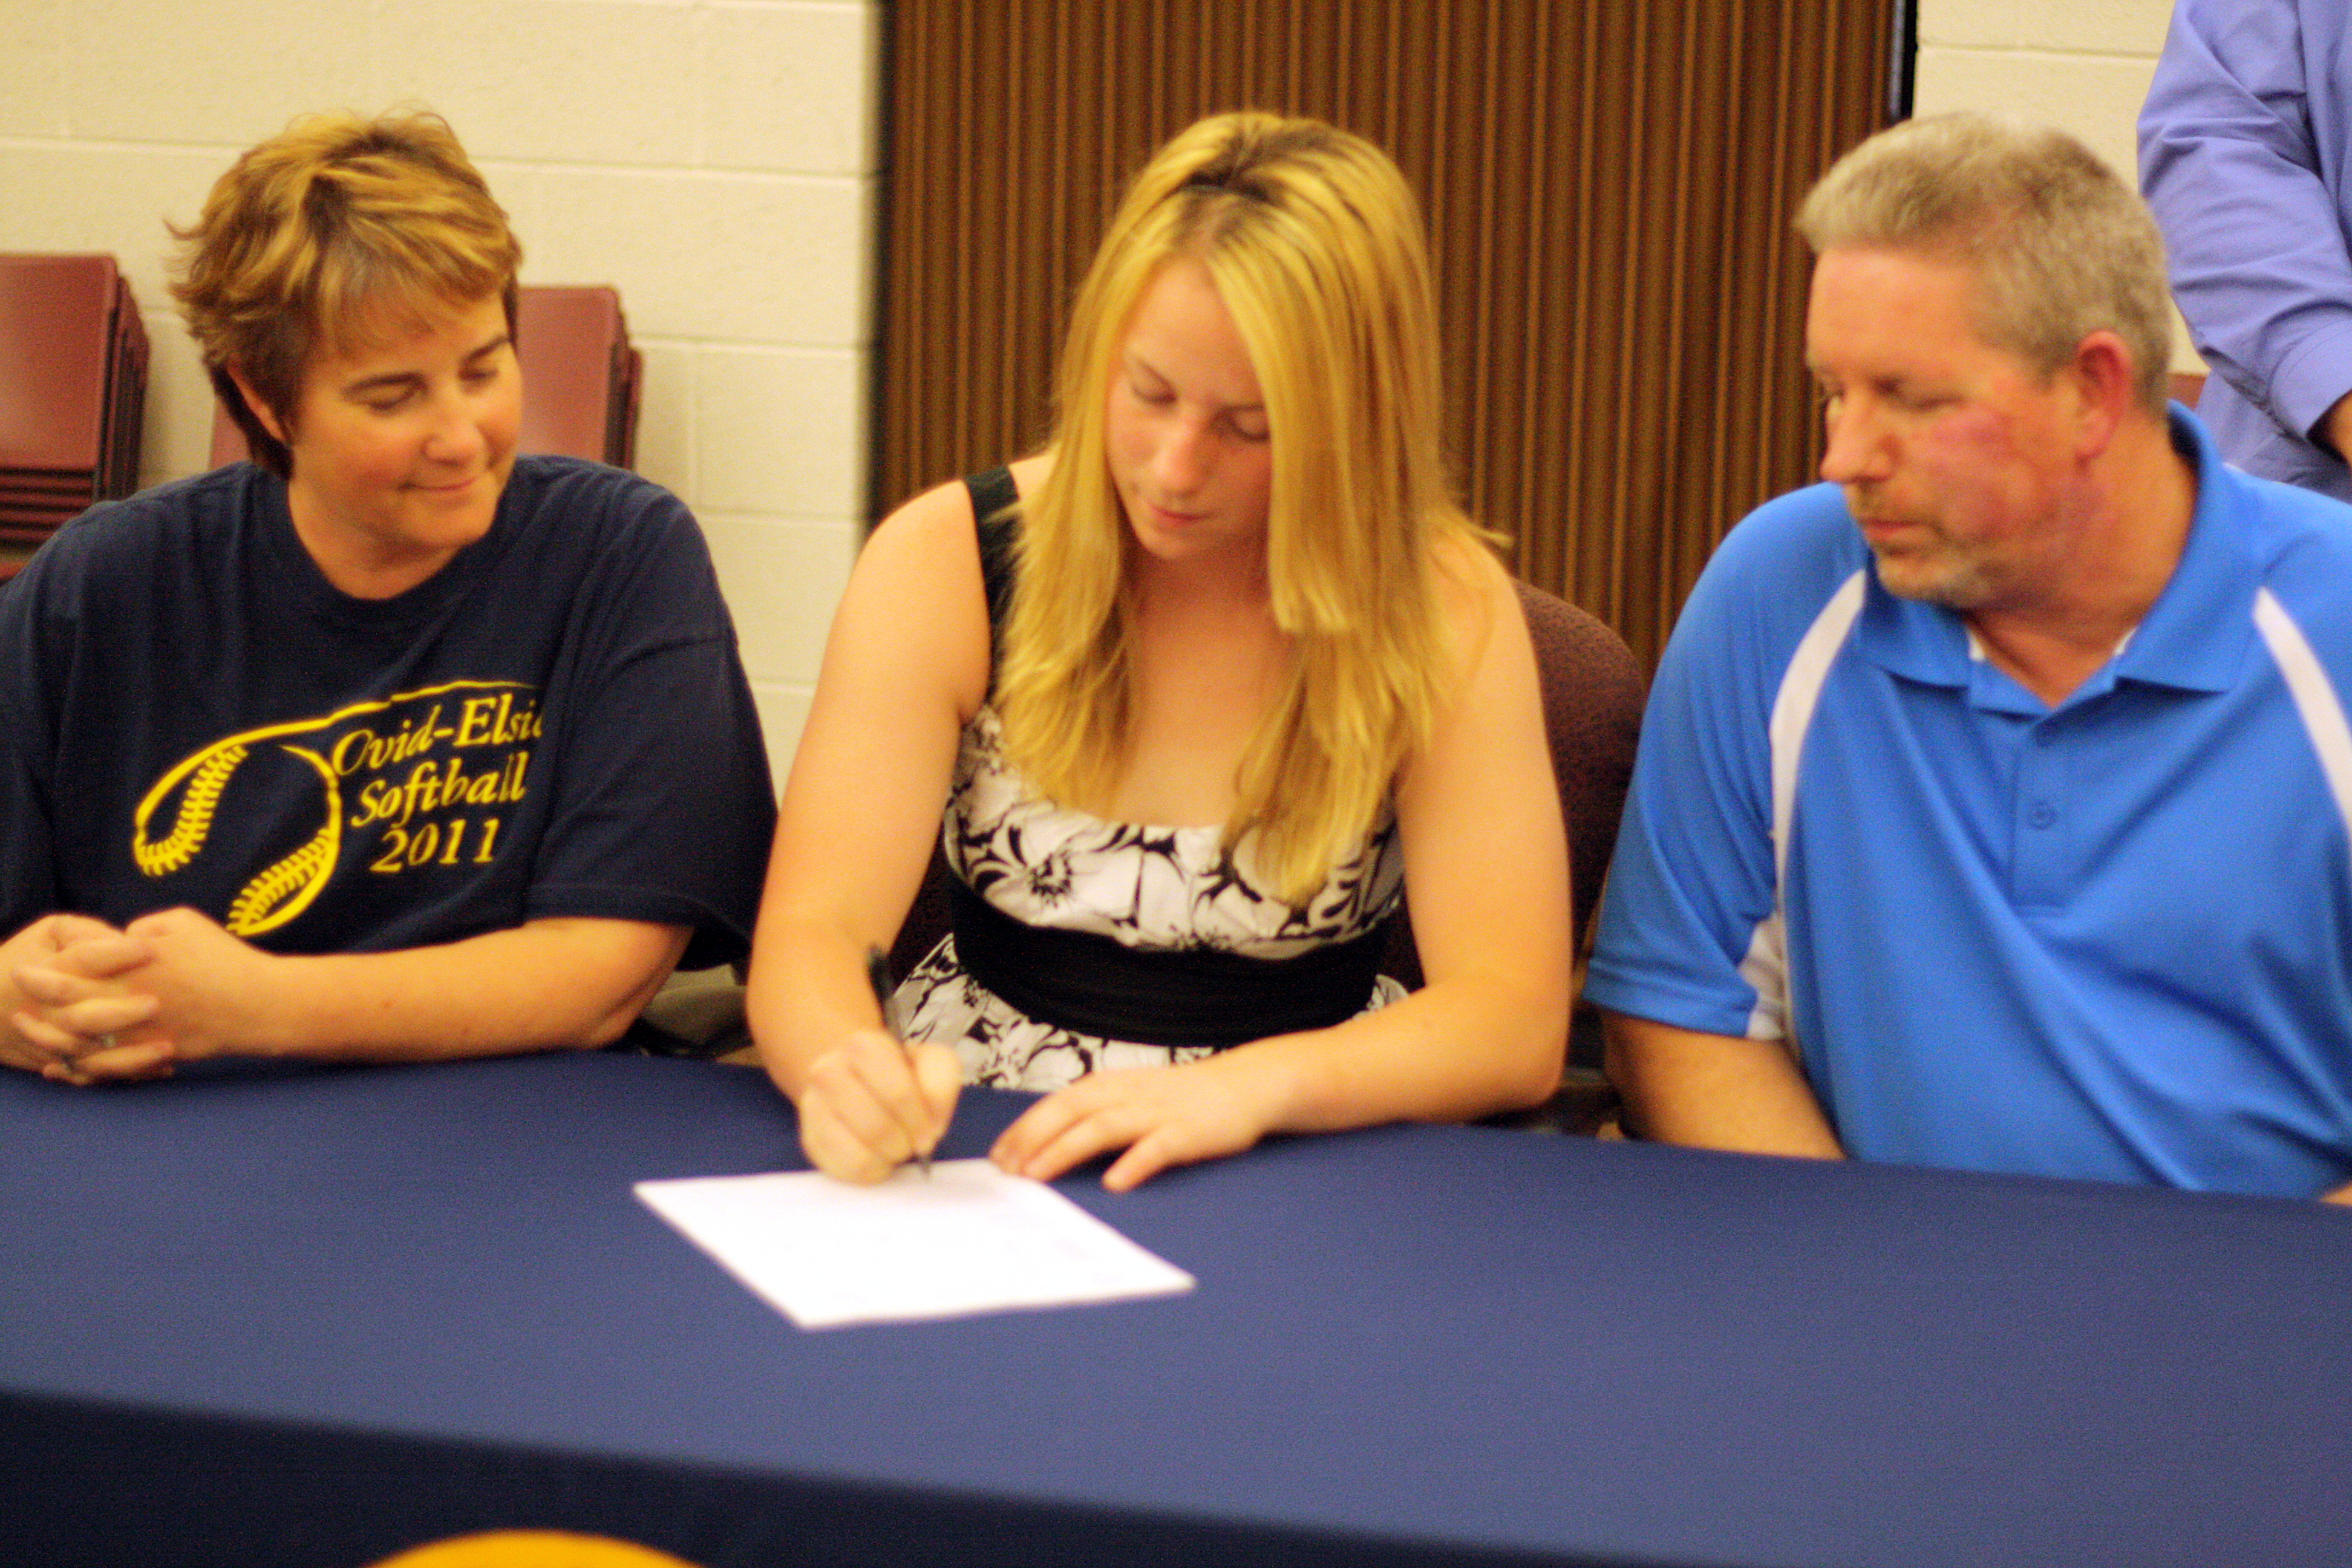 With her parents looking on, senior Alyson Rose signs a letter of intent to play softball at Brown Mackie College in Kansas.